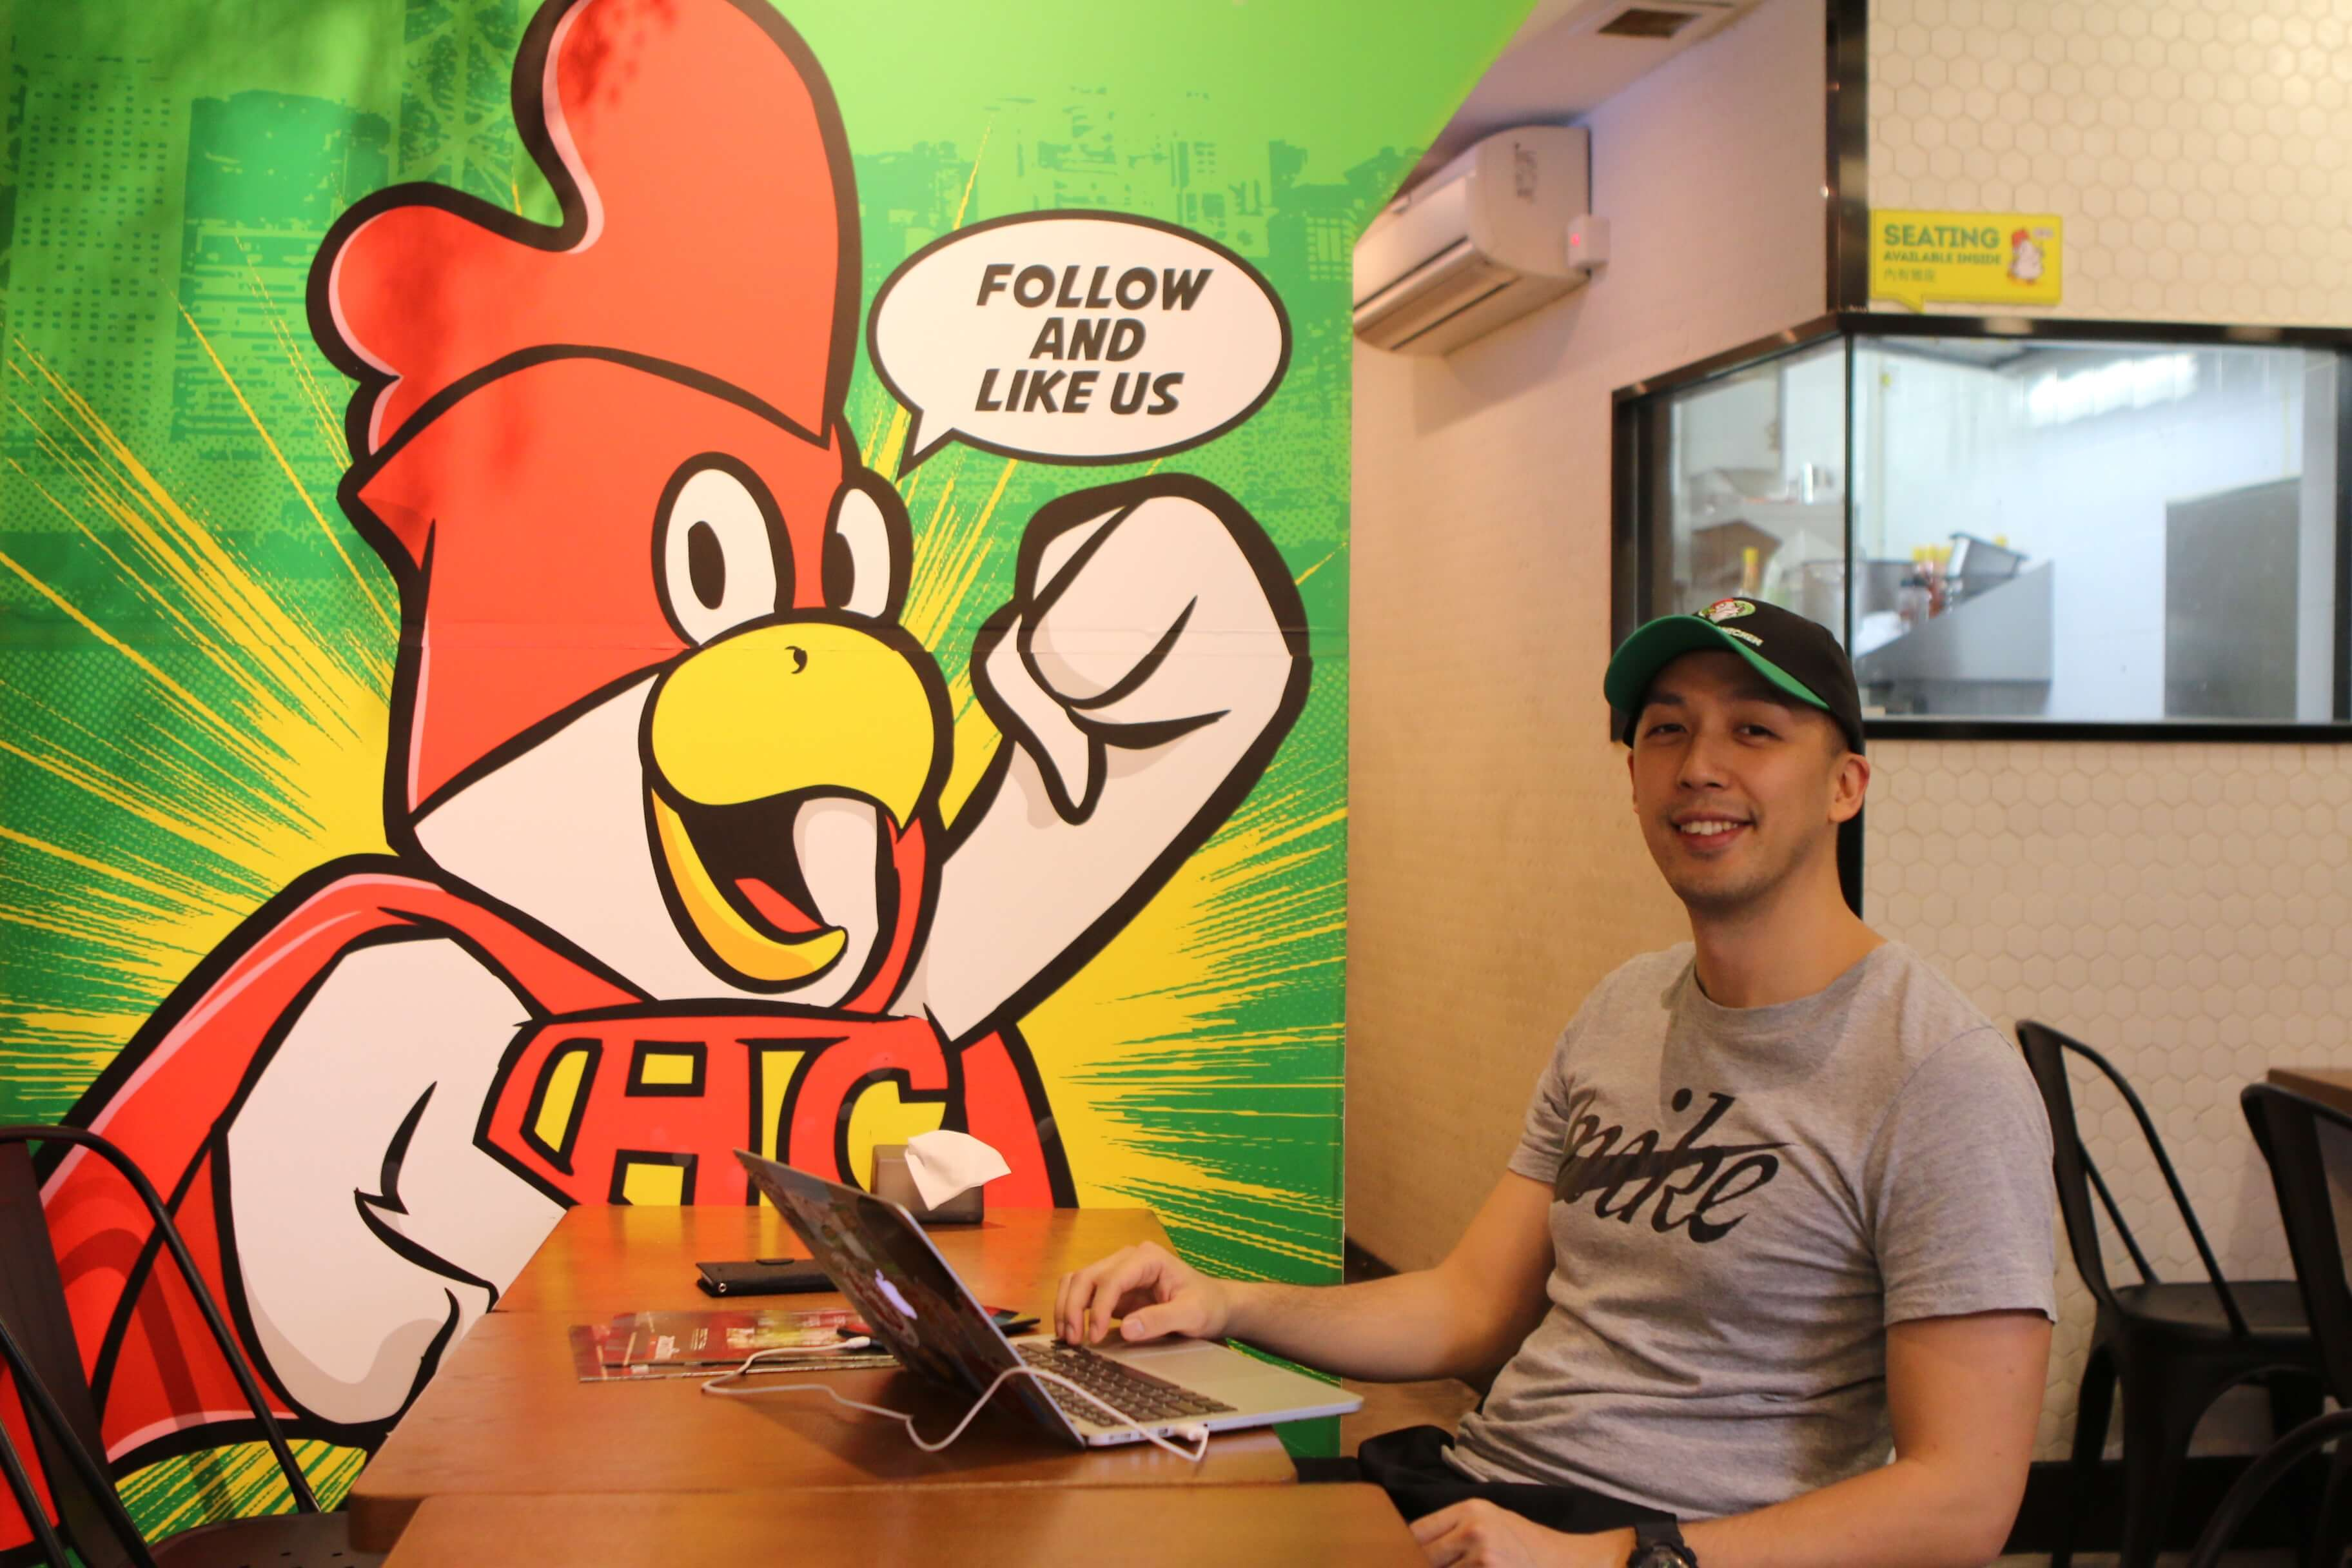 Founder of Healthy Chicken, Percy Hung, has been using online food delivery services since he started his business.